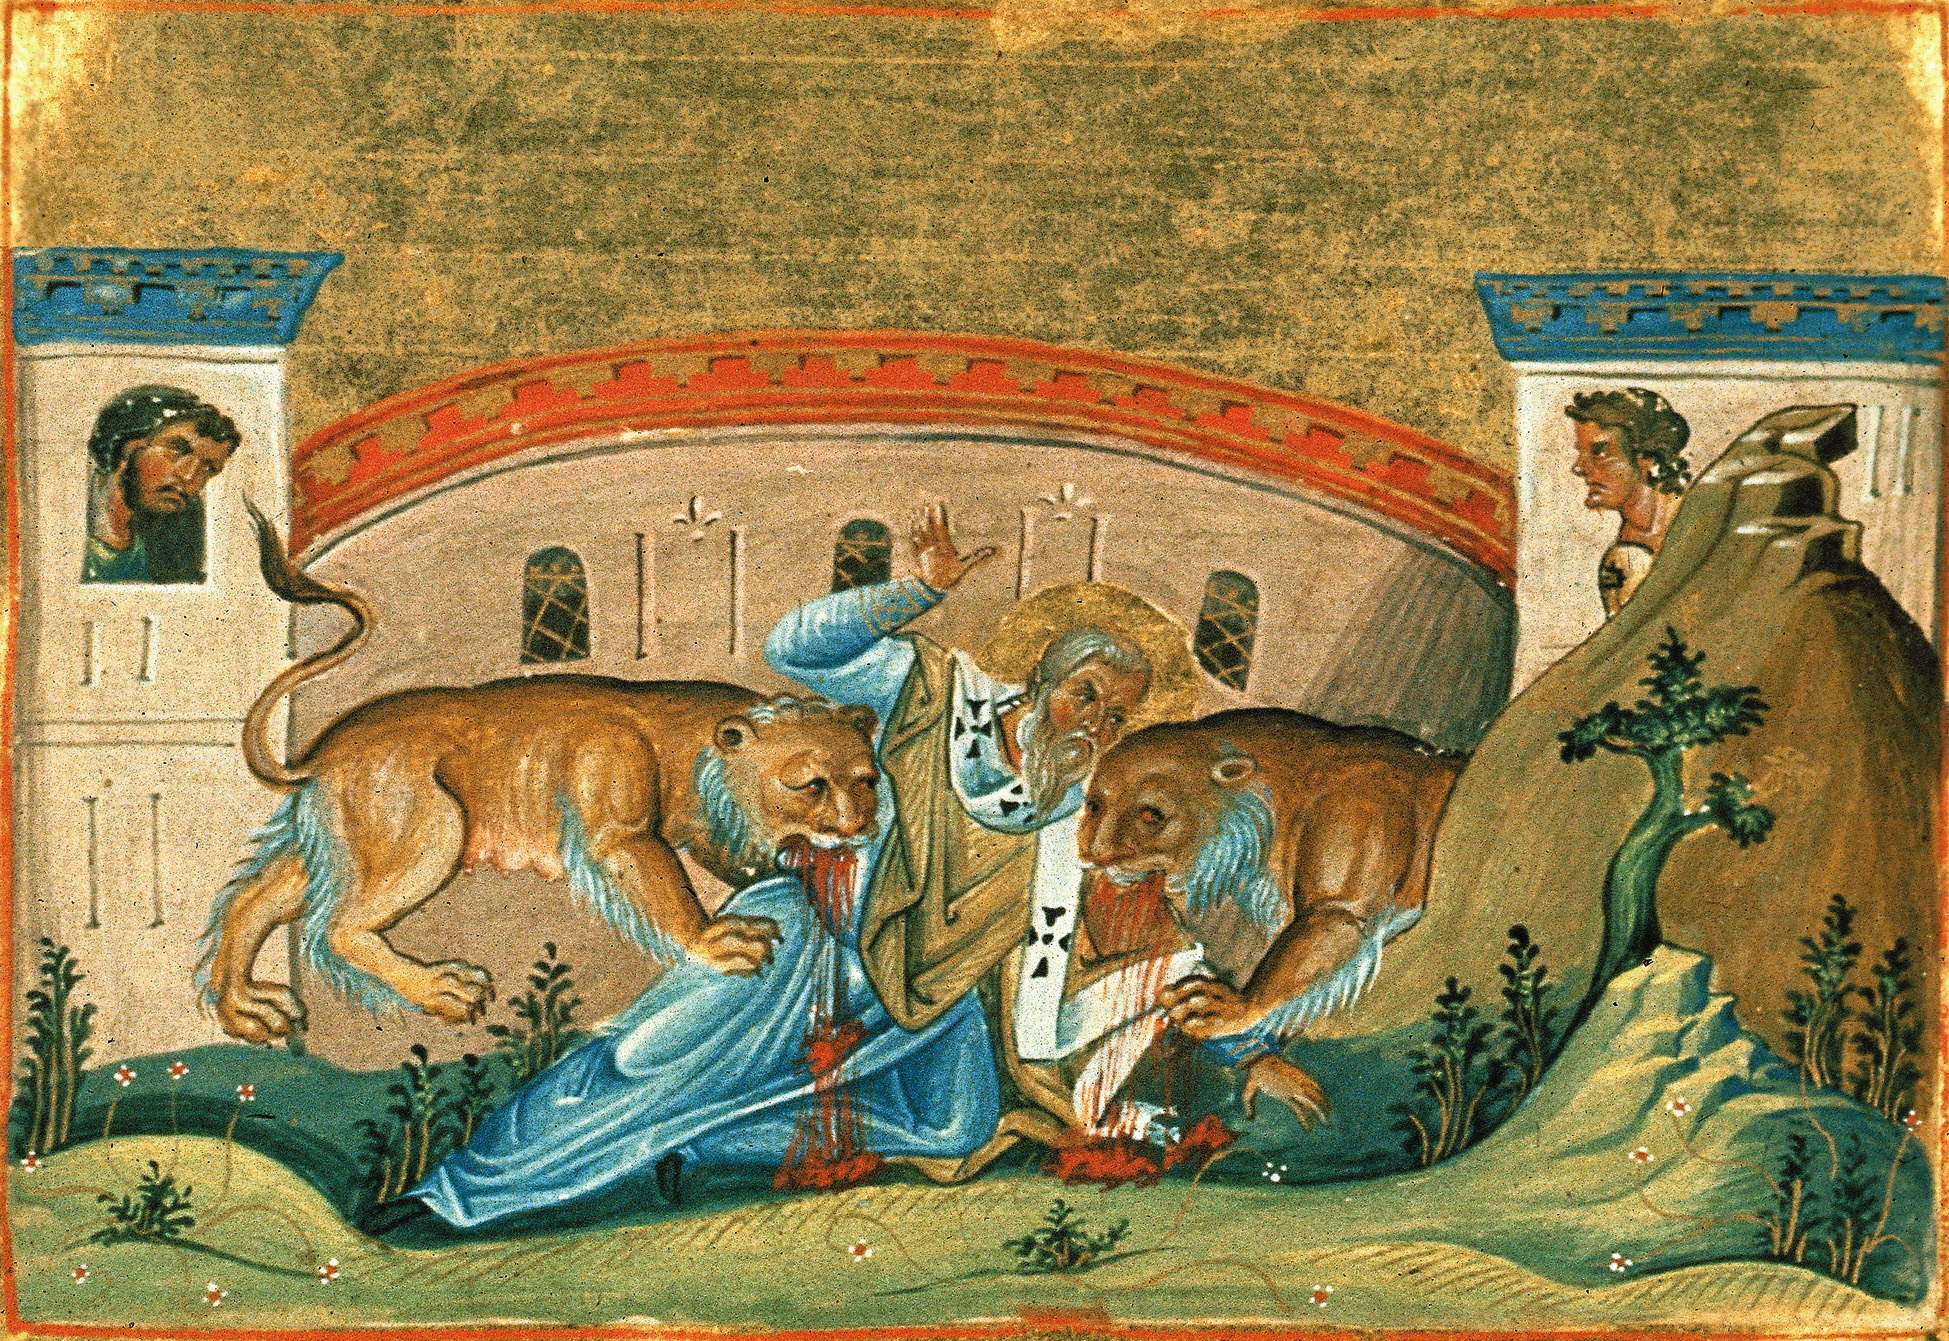 https://upload.wikimedia.org/wikipedia/commons/b/ba/Ignatius_of_Antioch.jpg